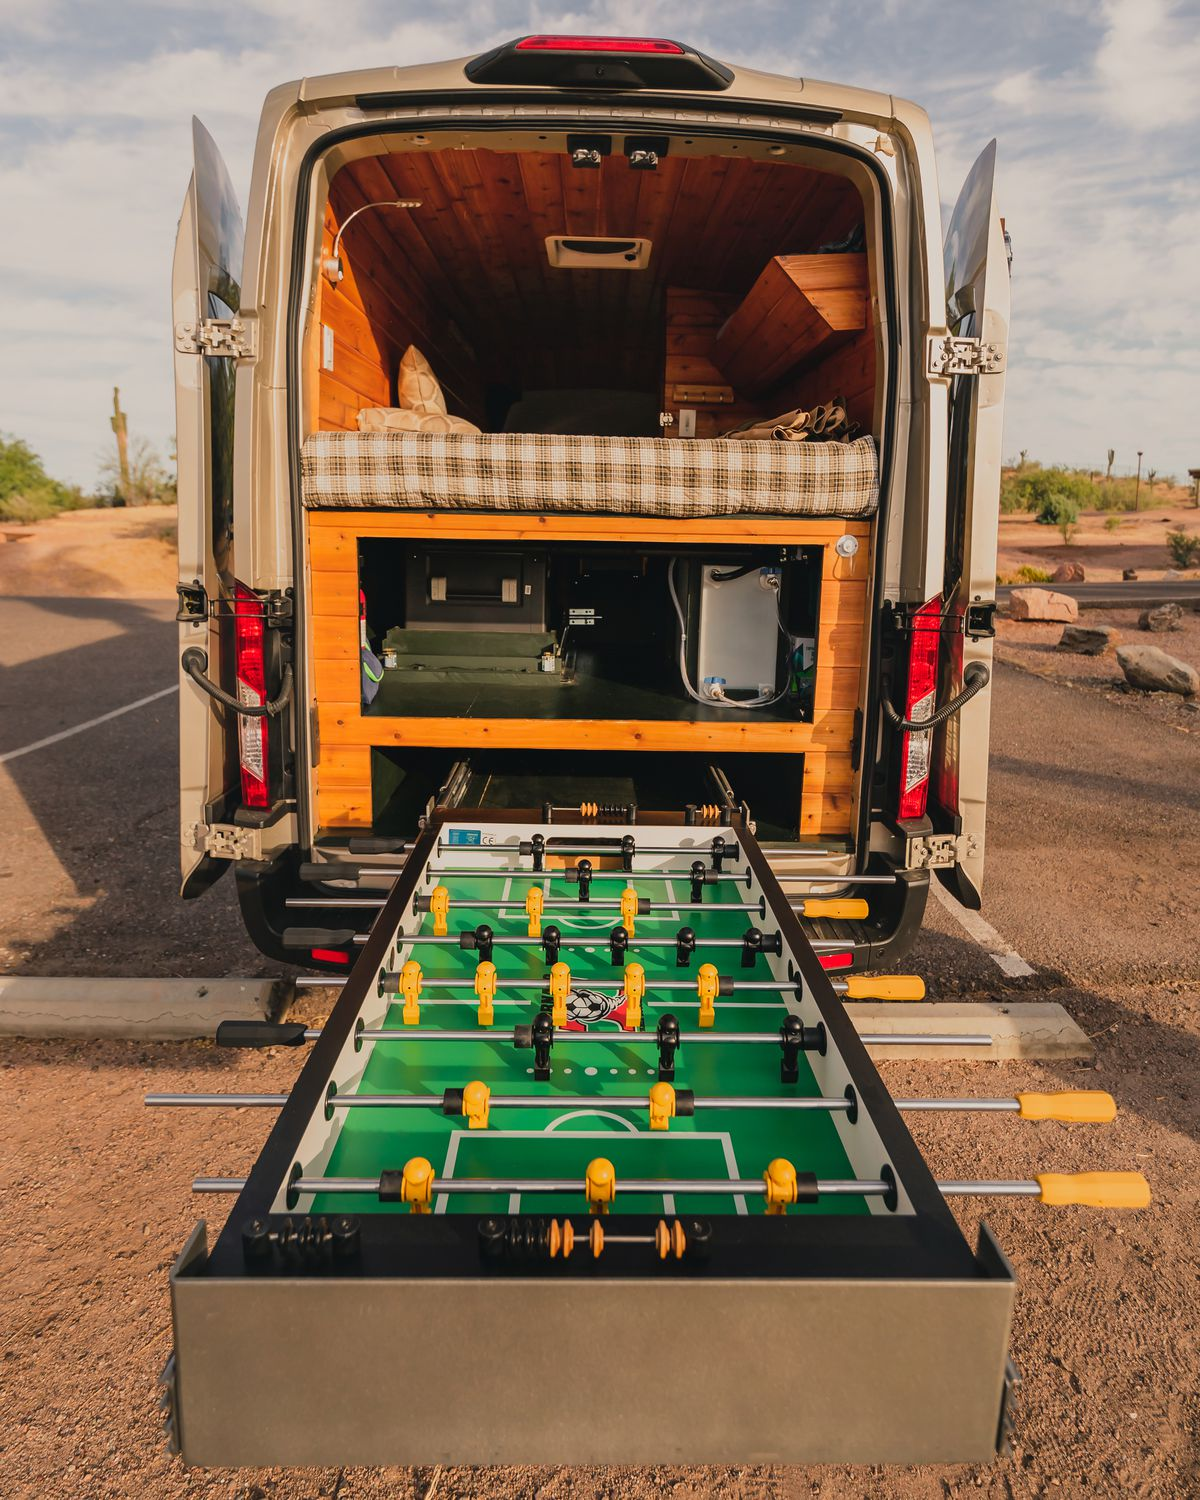 Inside the Custom Ford Camper - the all important Foosball table!